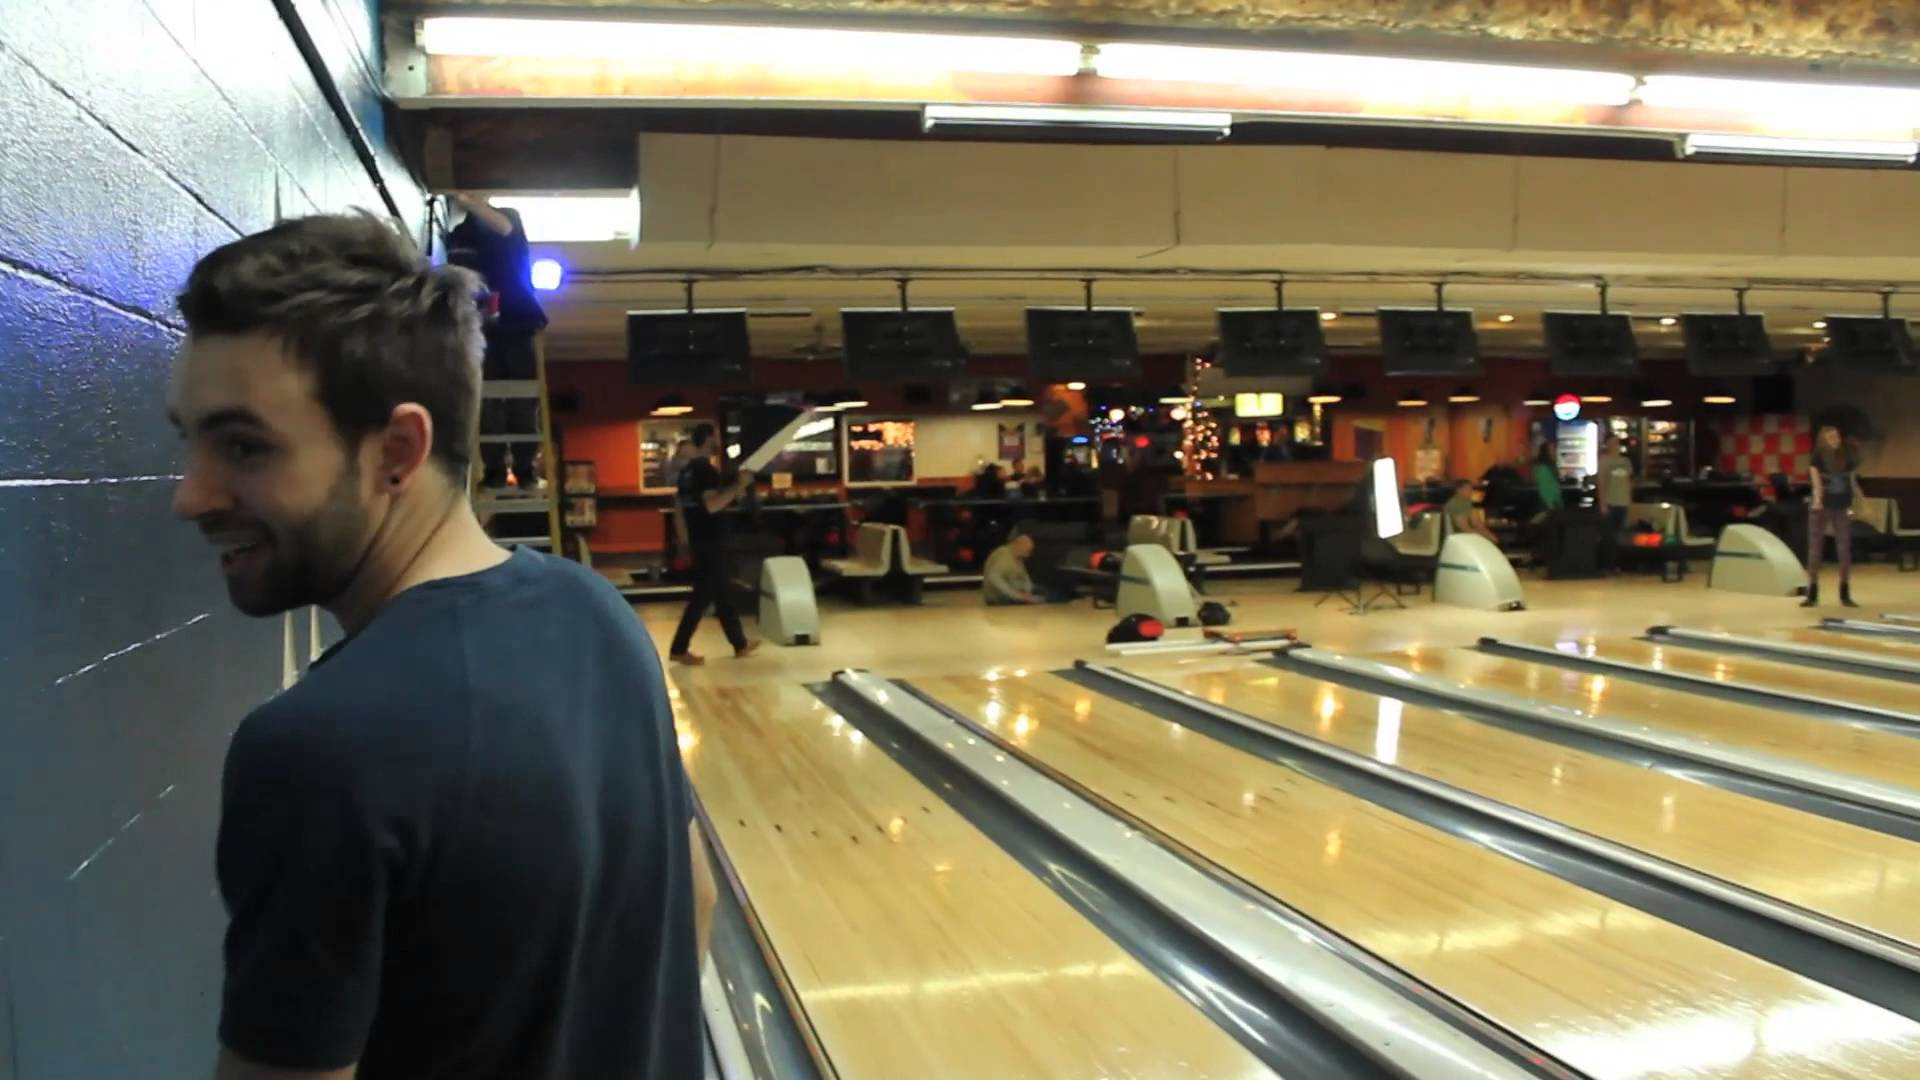 Behind the scenes at the bowling alley - YouTube